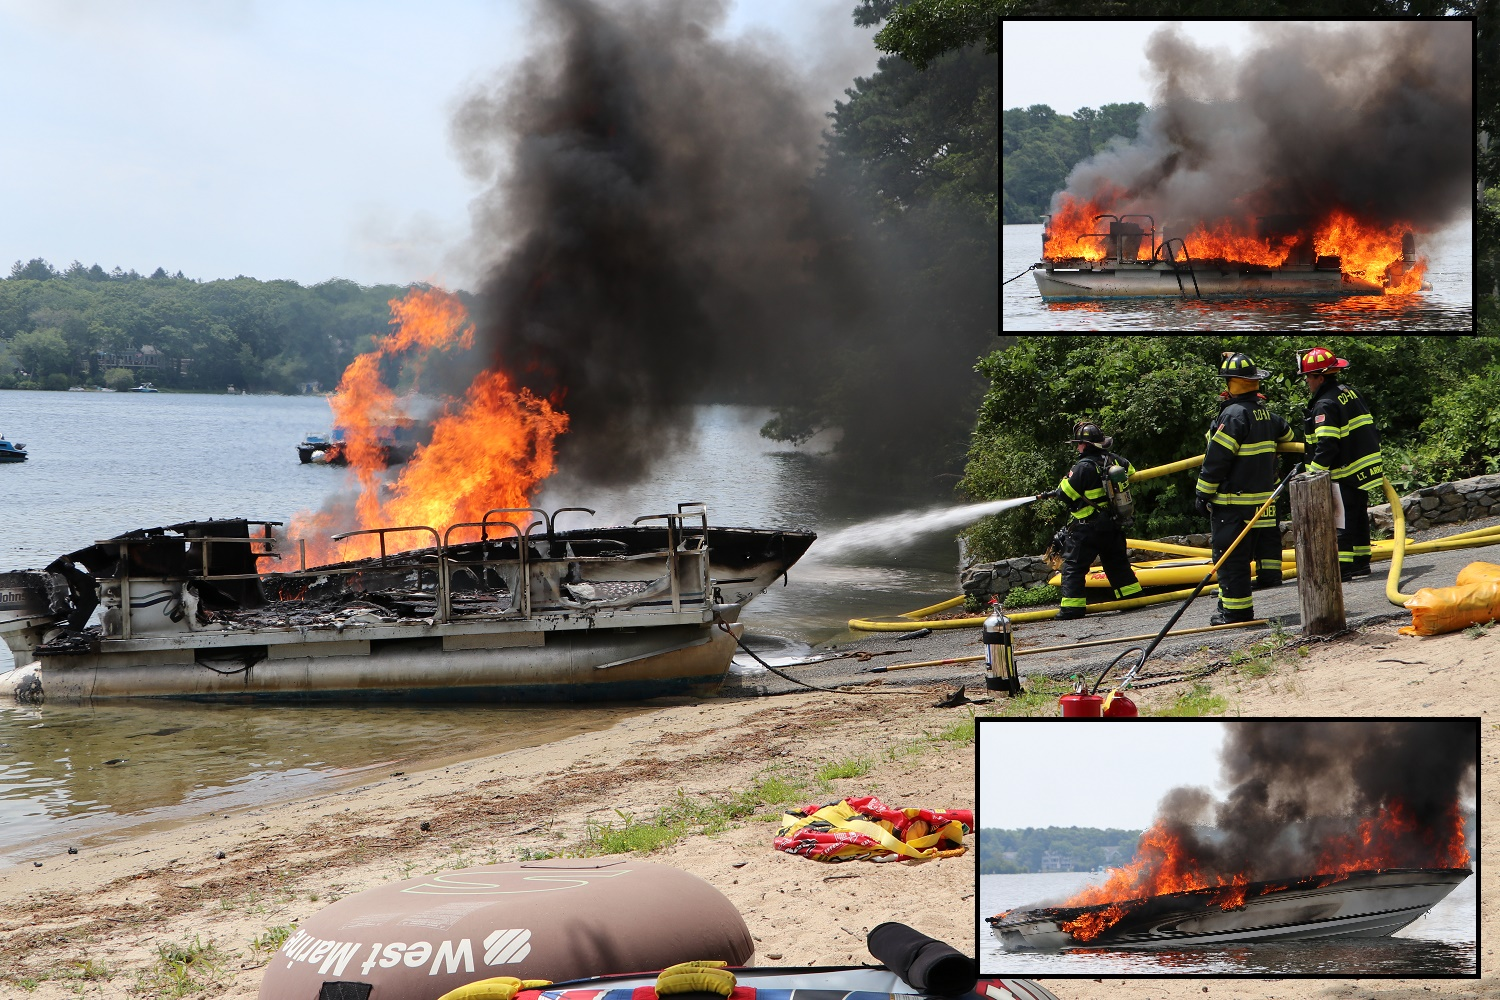 Firefighters battle two fully involved boat fires simultaneously on